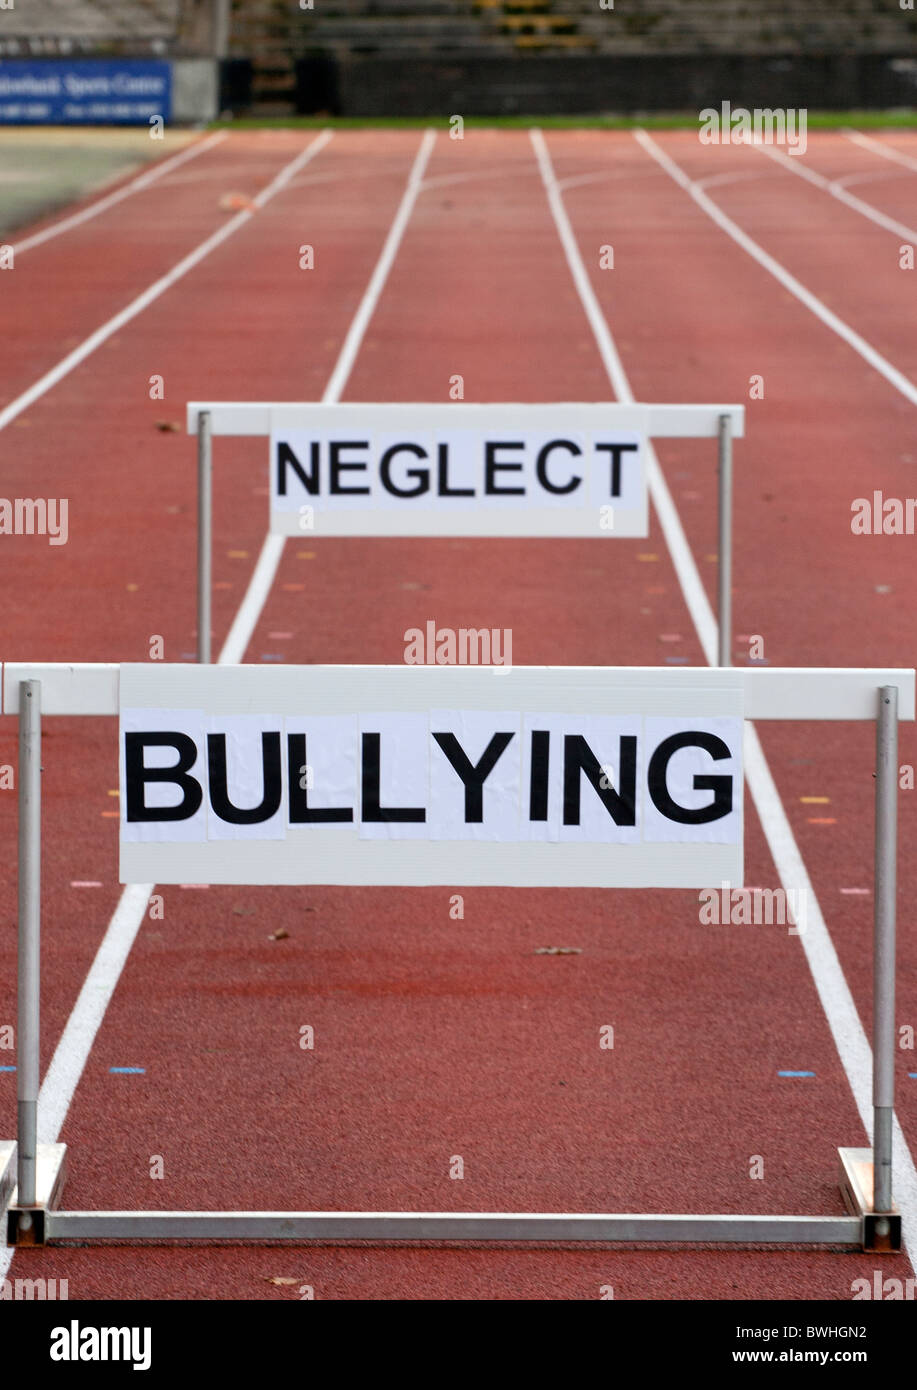 Hurdles on a track at Meadownbank Stadium with neglect and bullying depicted as life hurdles - Stock Image